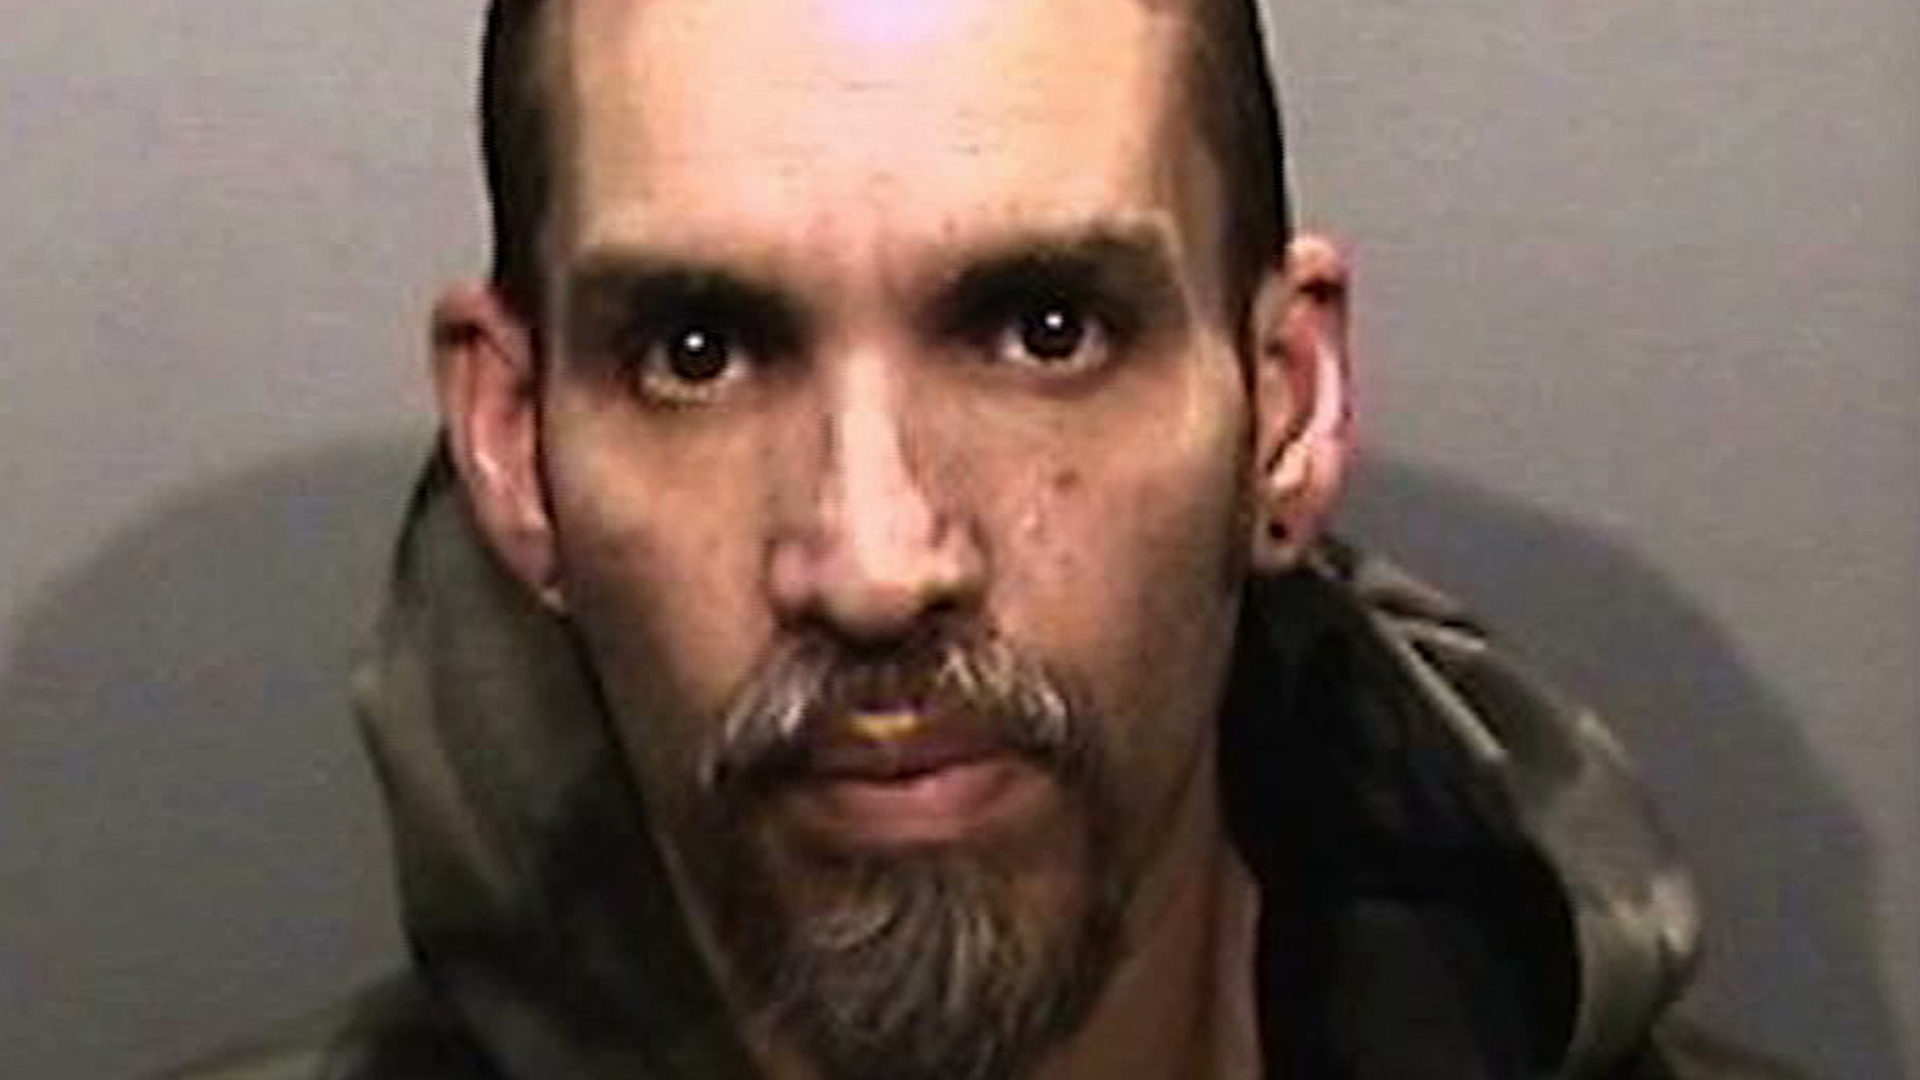 Derick Almena appears in a 2017 booking photo released by the Alameda County Sheriff's Office. (Credit: KGO via CNN)